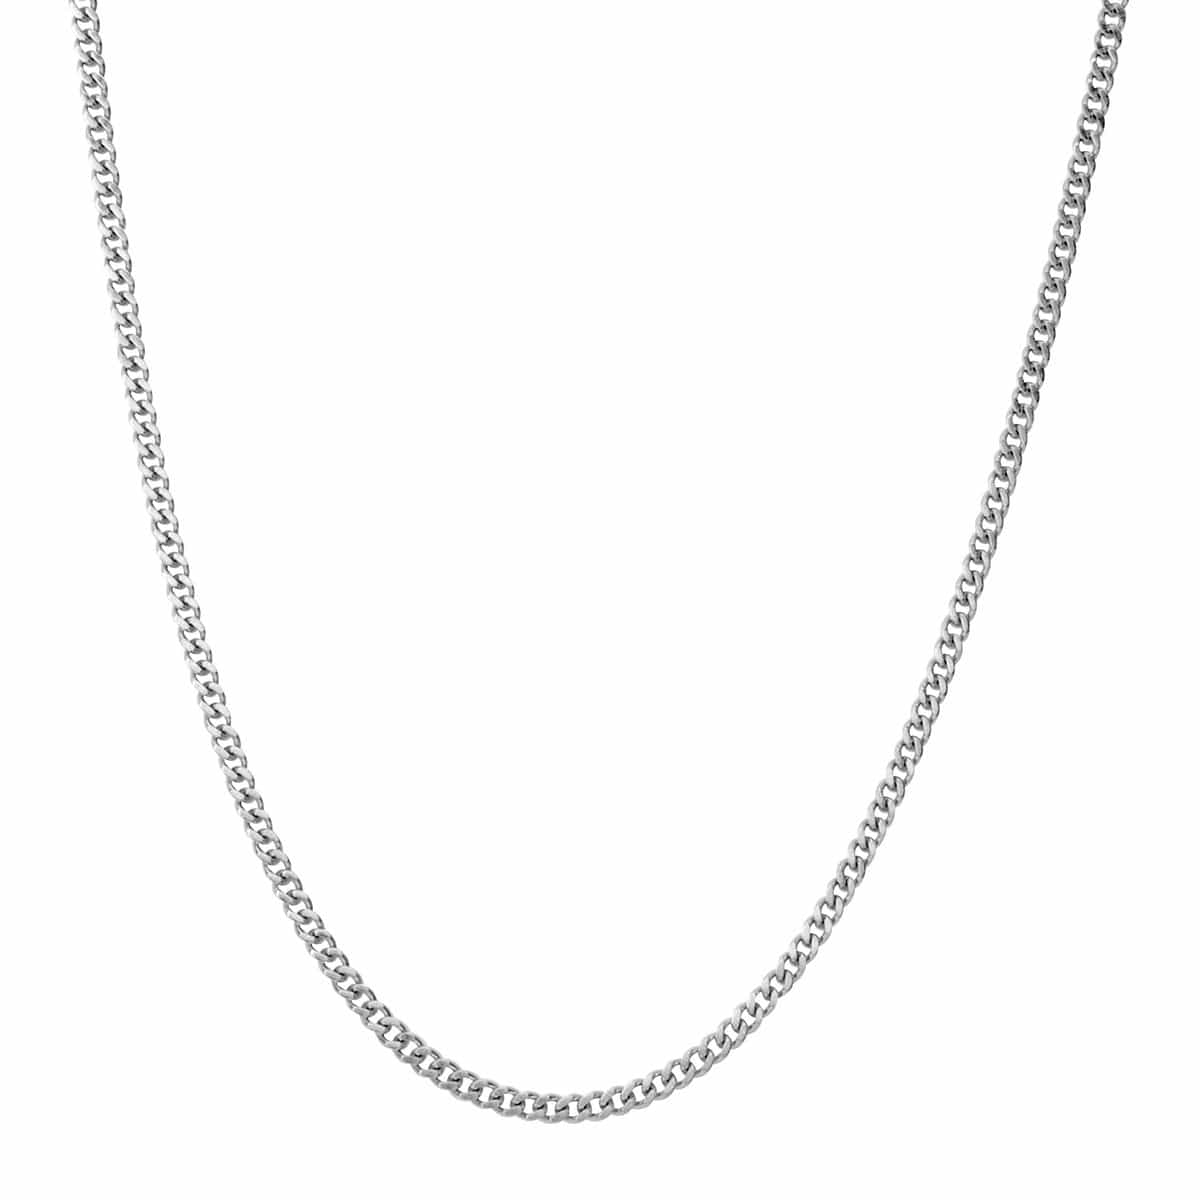 Silver Stainless Steel Polished 2mm Flat Curb Chain Chains